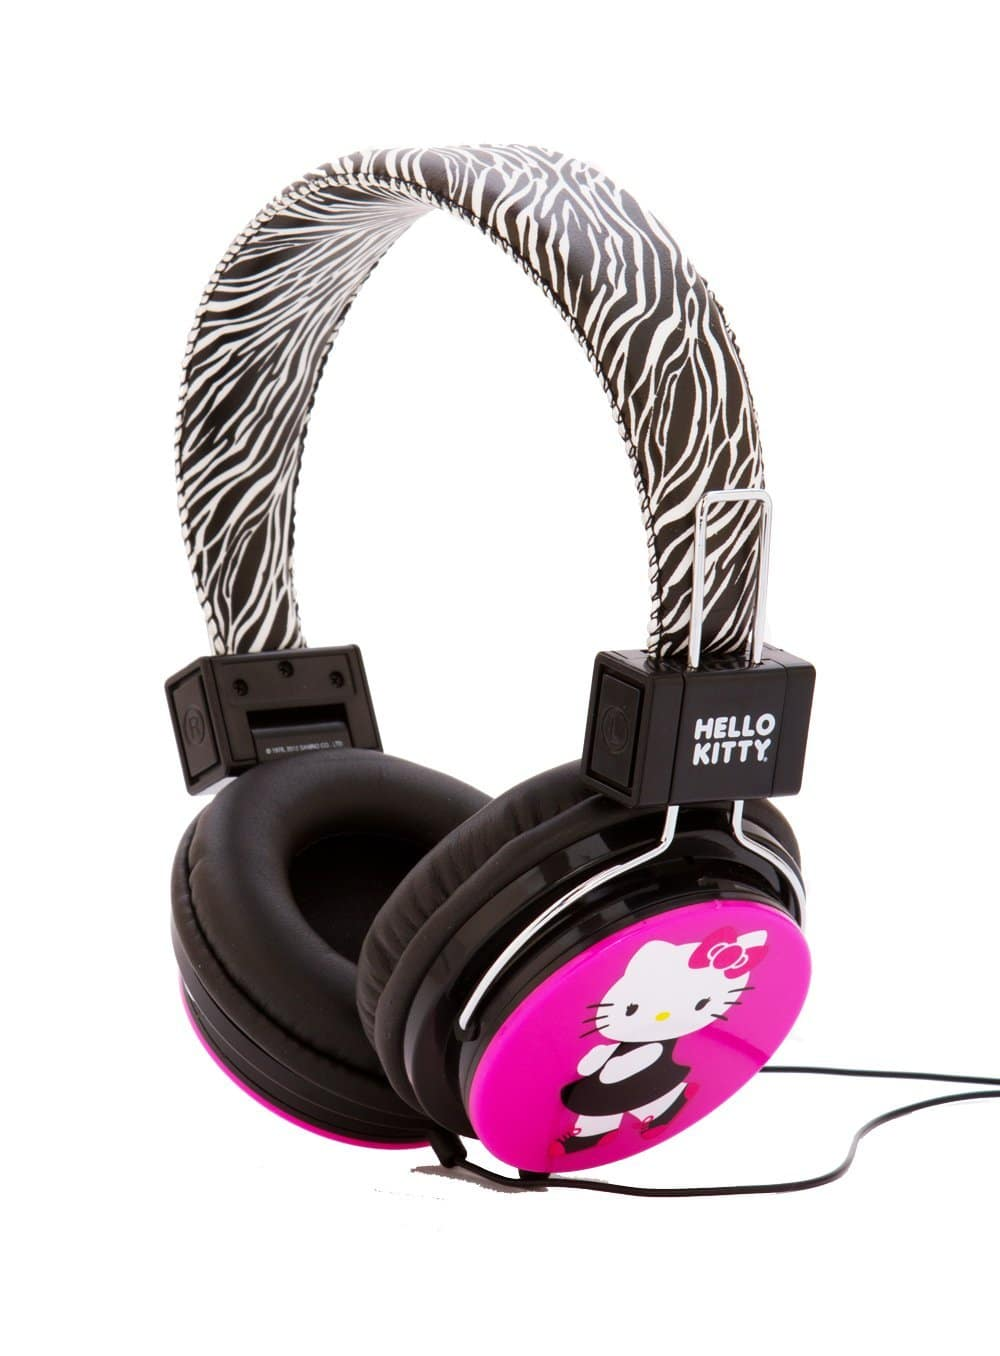 Hello kitty wireless headphones - headphones tv wireless